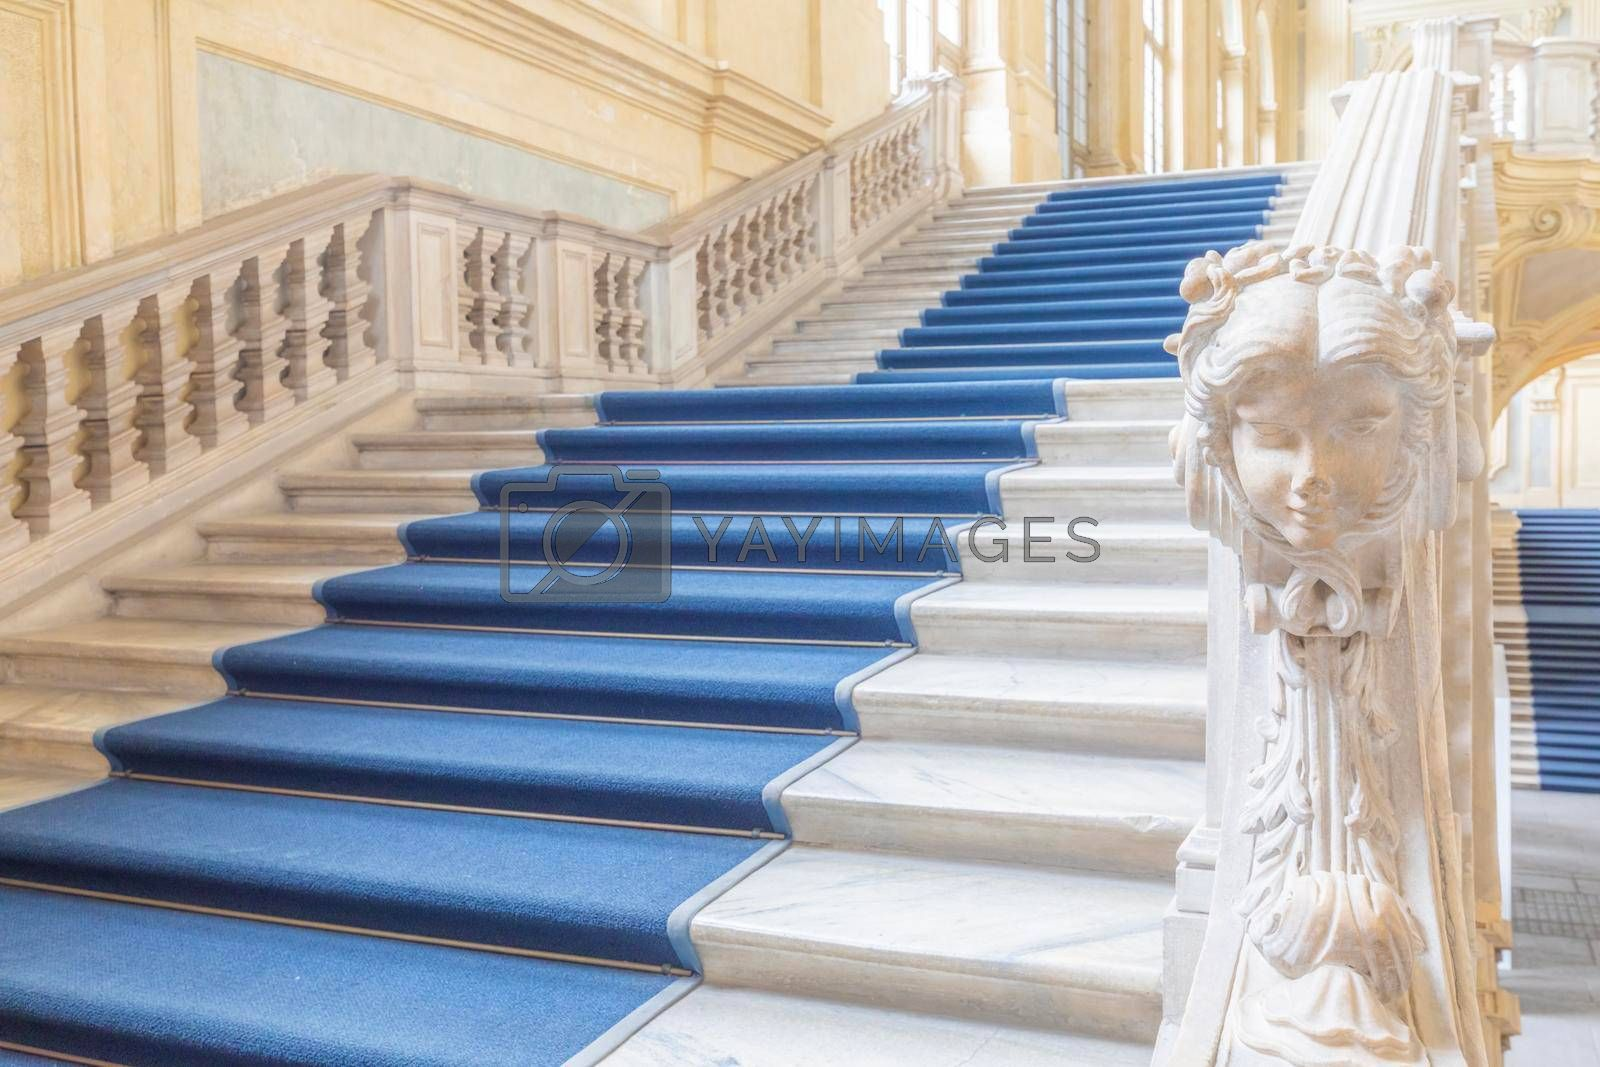 Royalty free image of The most beautiful Baroque staircase of Europe located in Madama Palace (Palazzo Madama), Turin, Italy. Interior with luxury marbles, windows and corridors.  by Perseomedusa